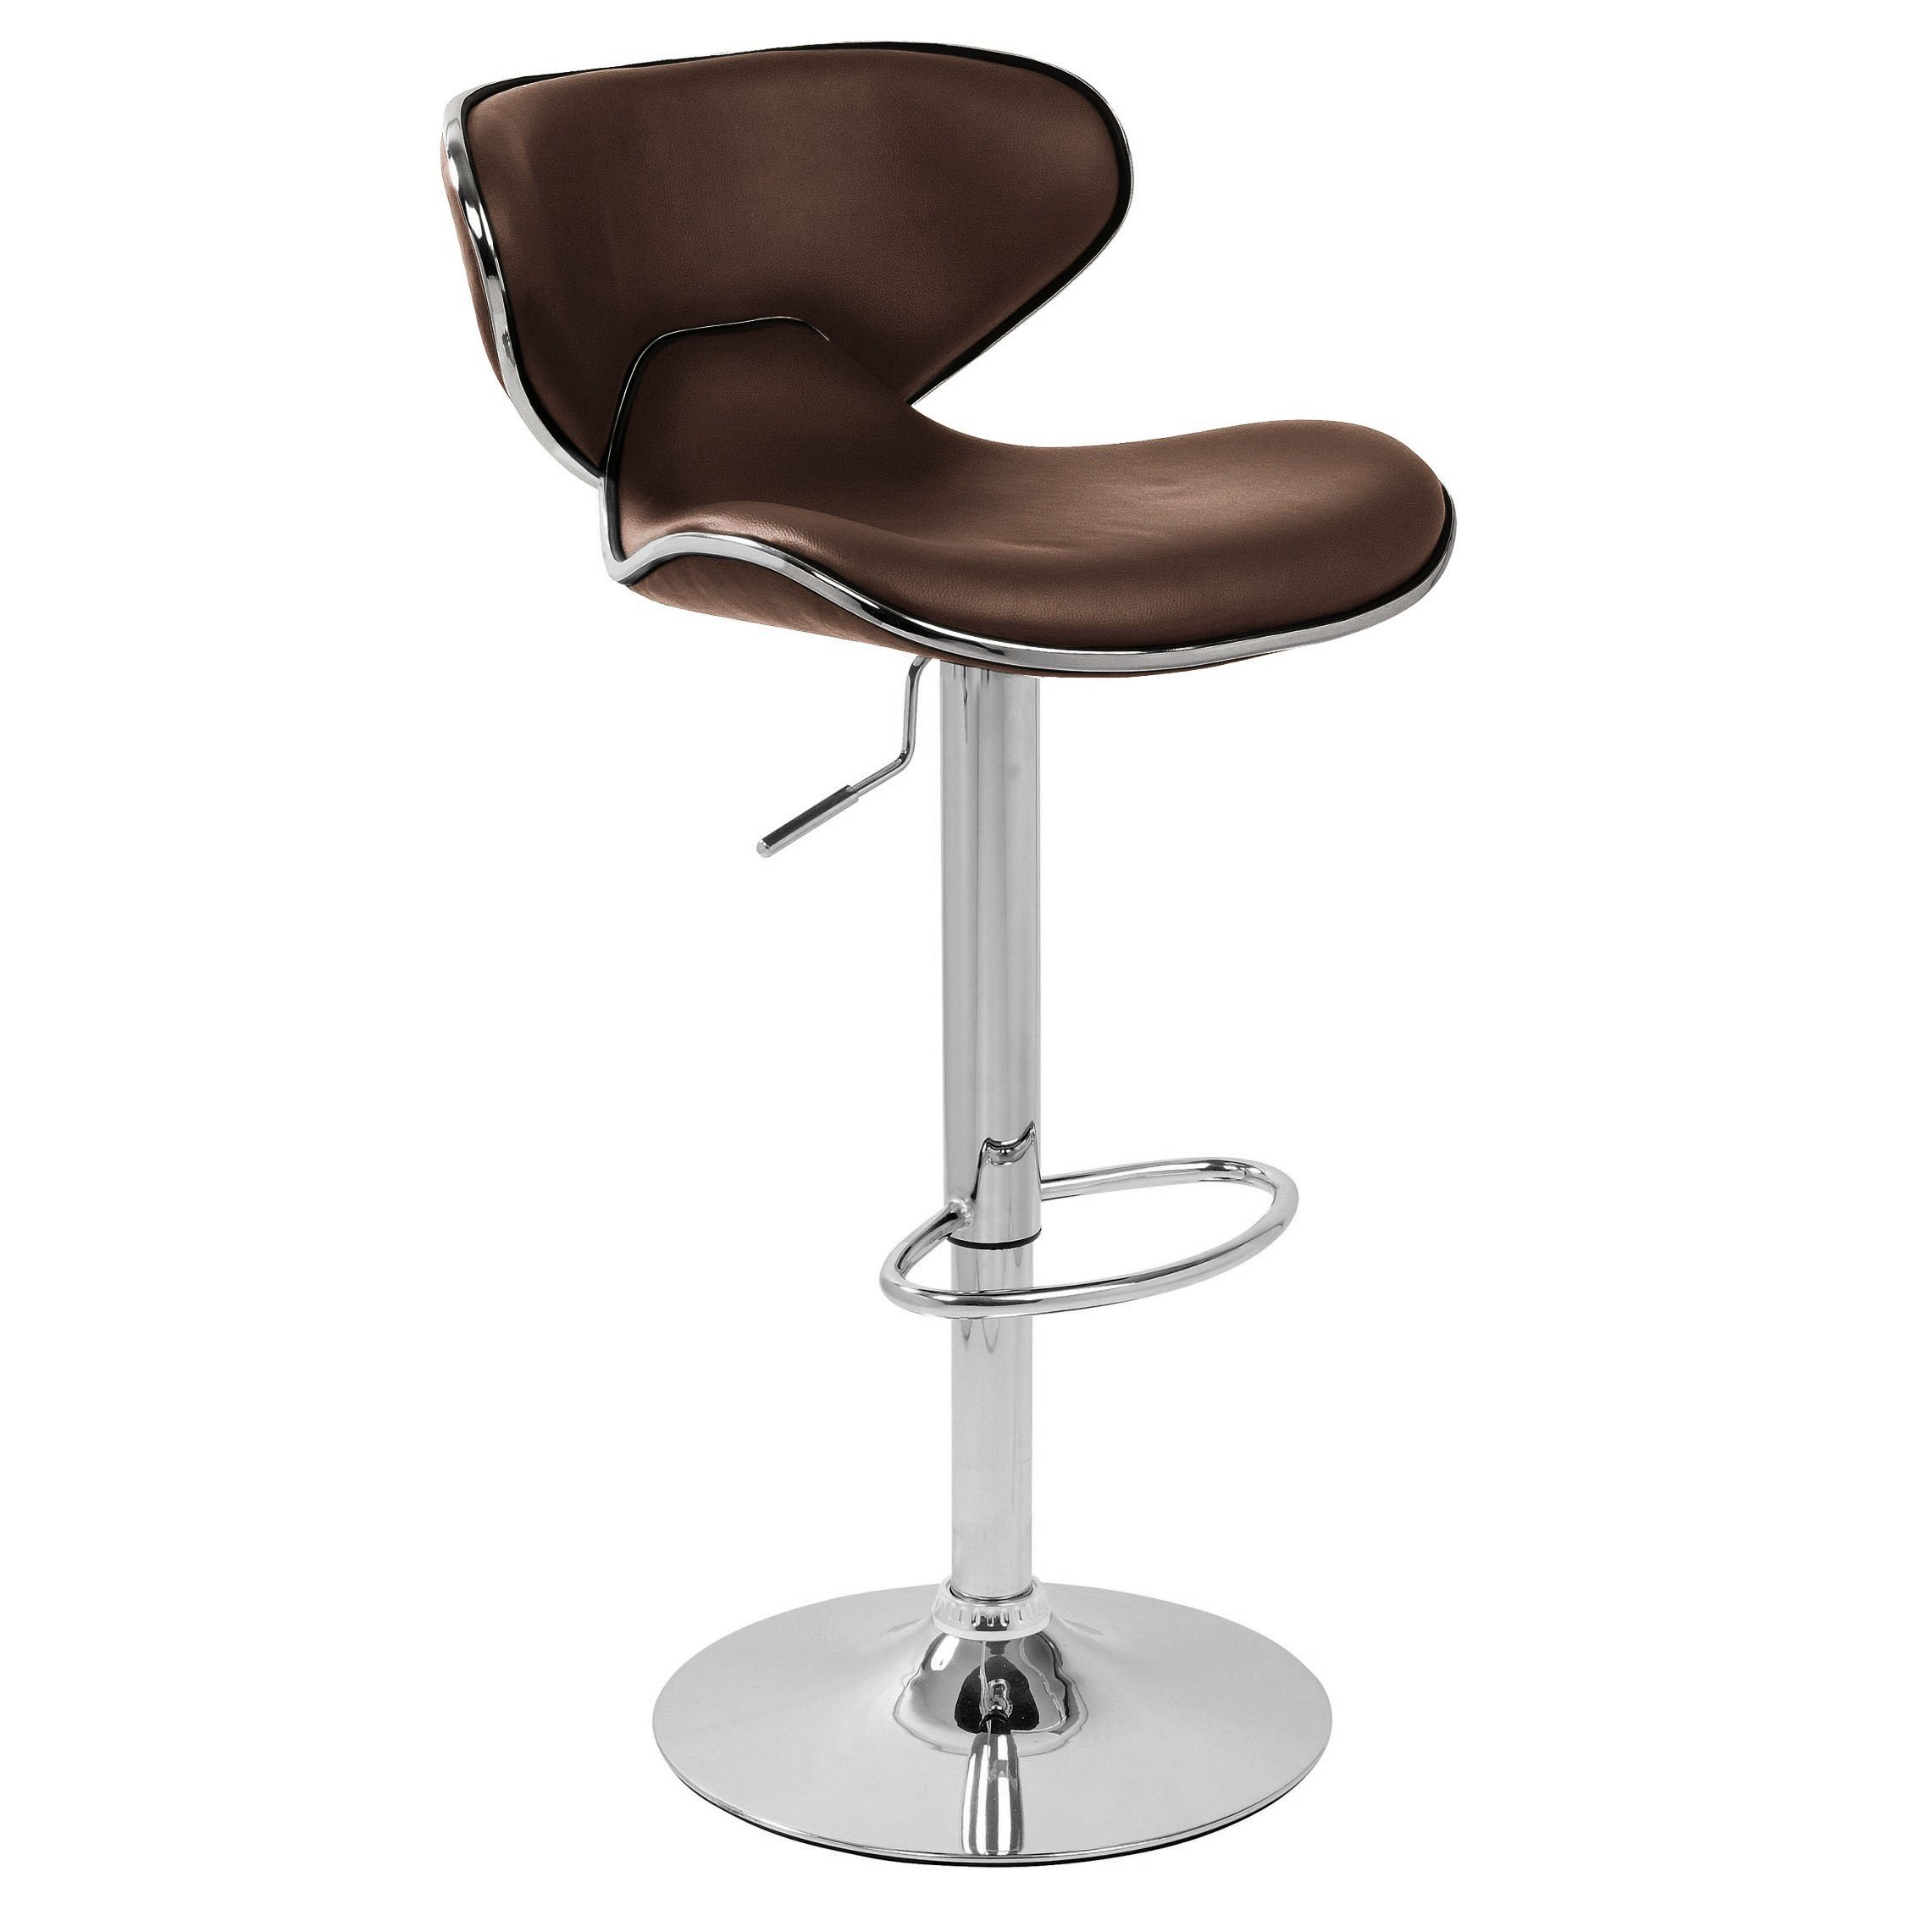 Carcaso Bar Stool - Brown